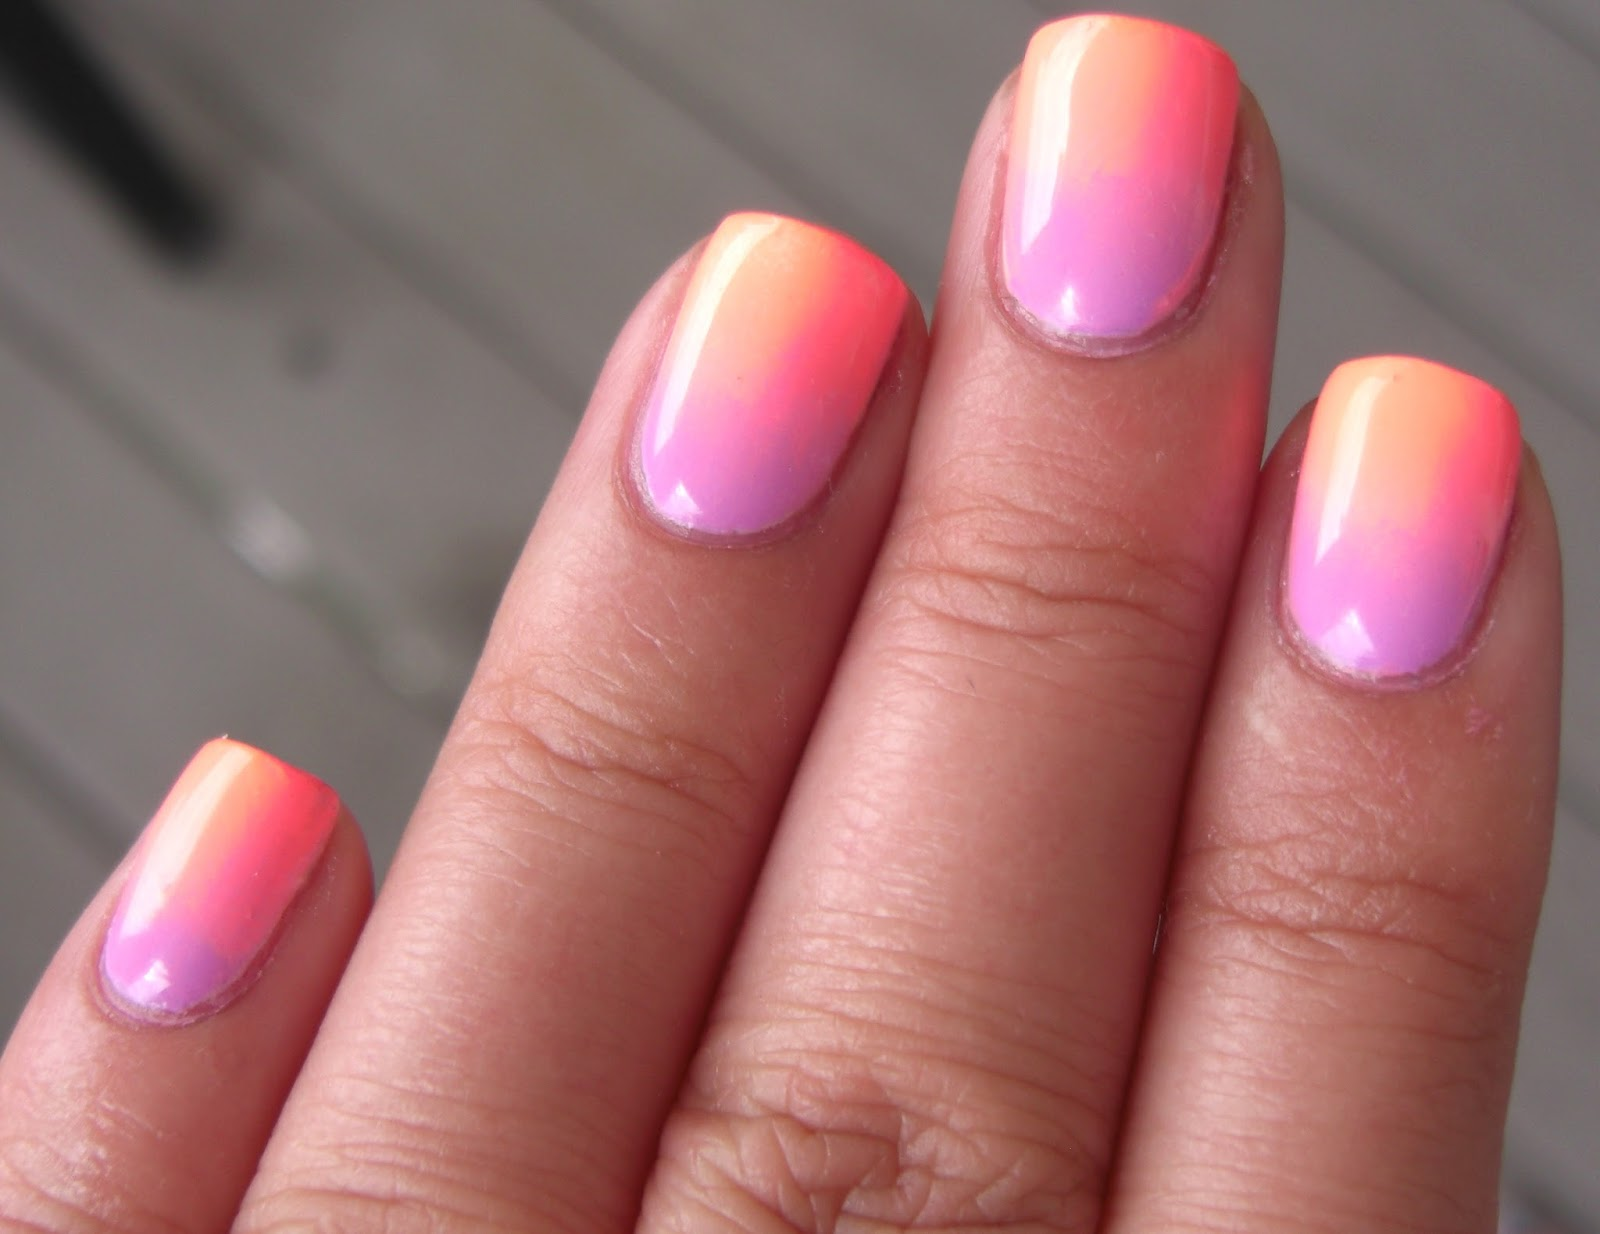 handtastic intentions nail art pastel summer neon gradient. Black Bedroom Furniture Sets. Home Design Ideas